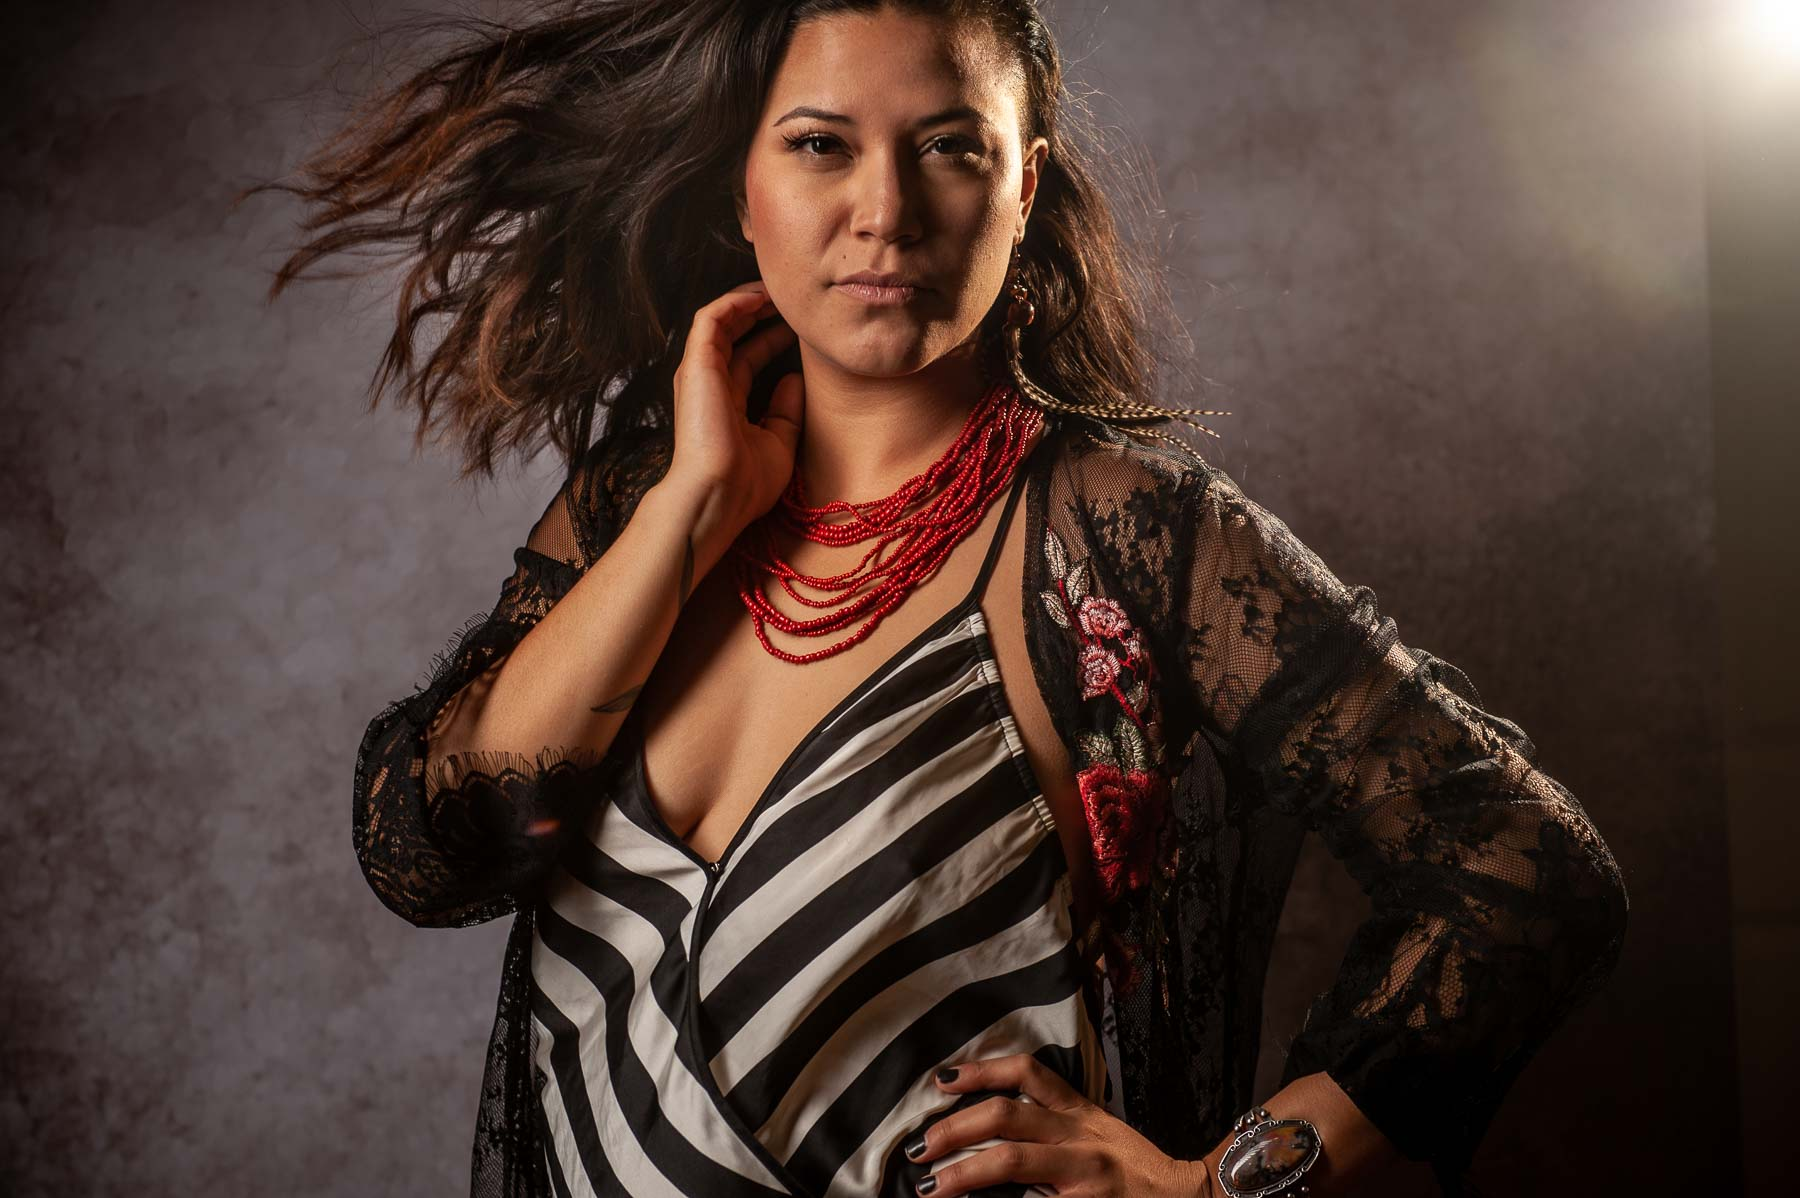 0001-DW-flagstaff-crave-boudoir-photos-DSC_6574-Edit-2019ther2studio